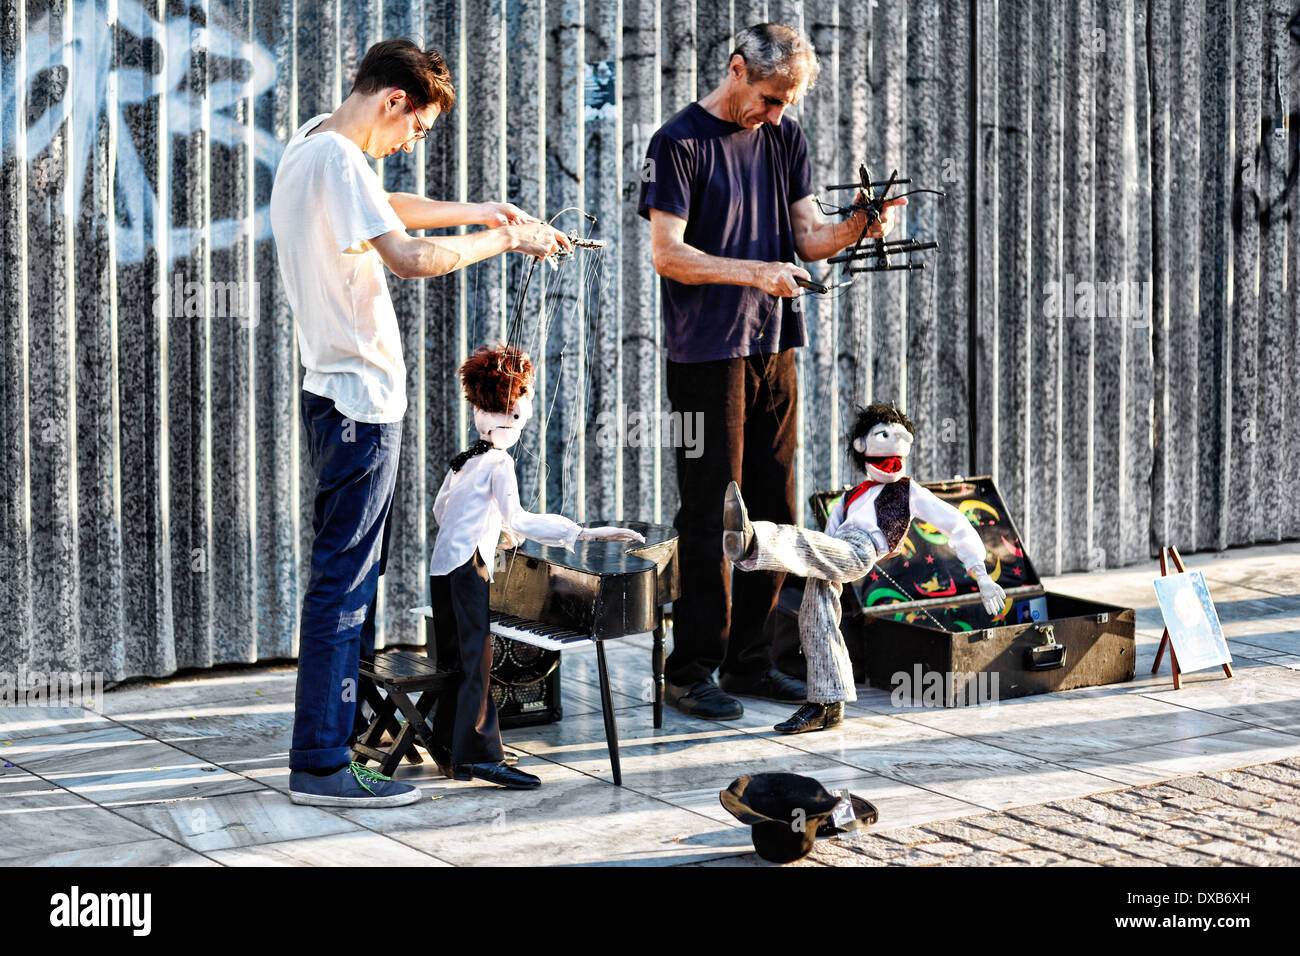 Marionette performance in the street of Athens, Greece - Stock Image